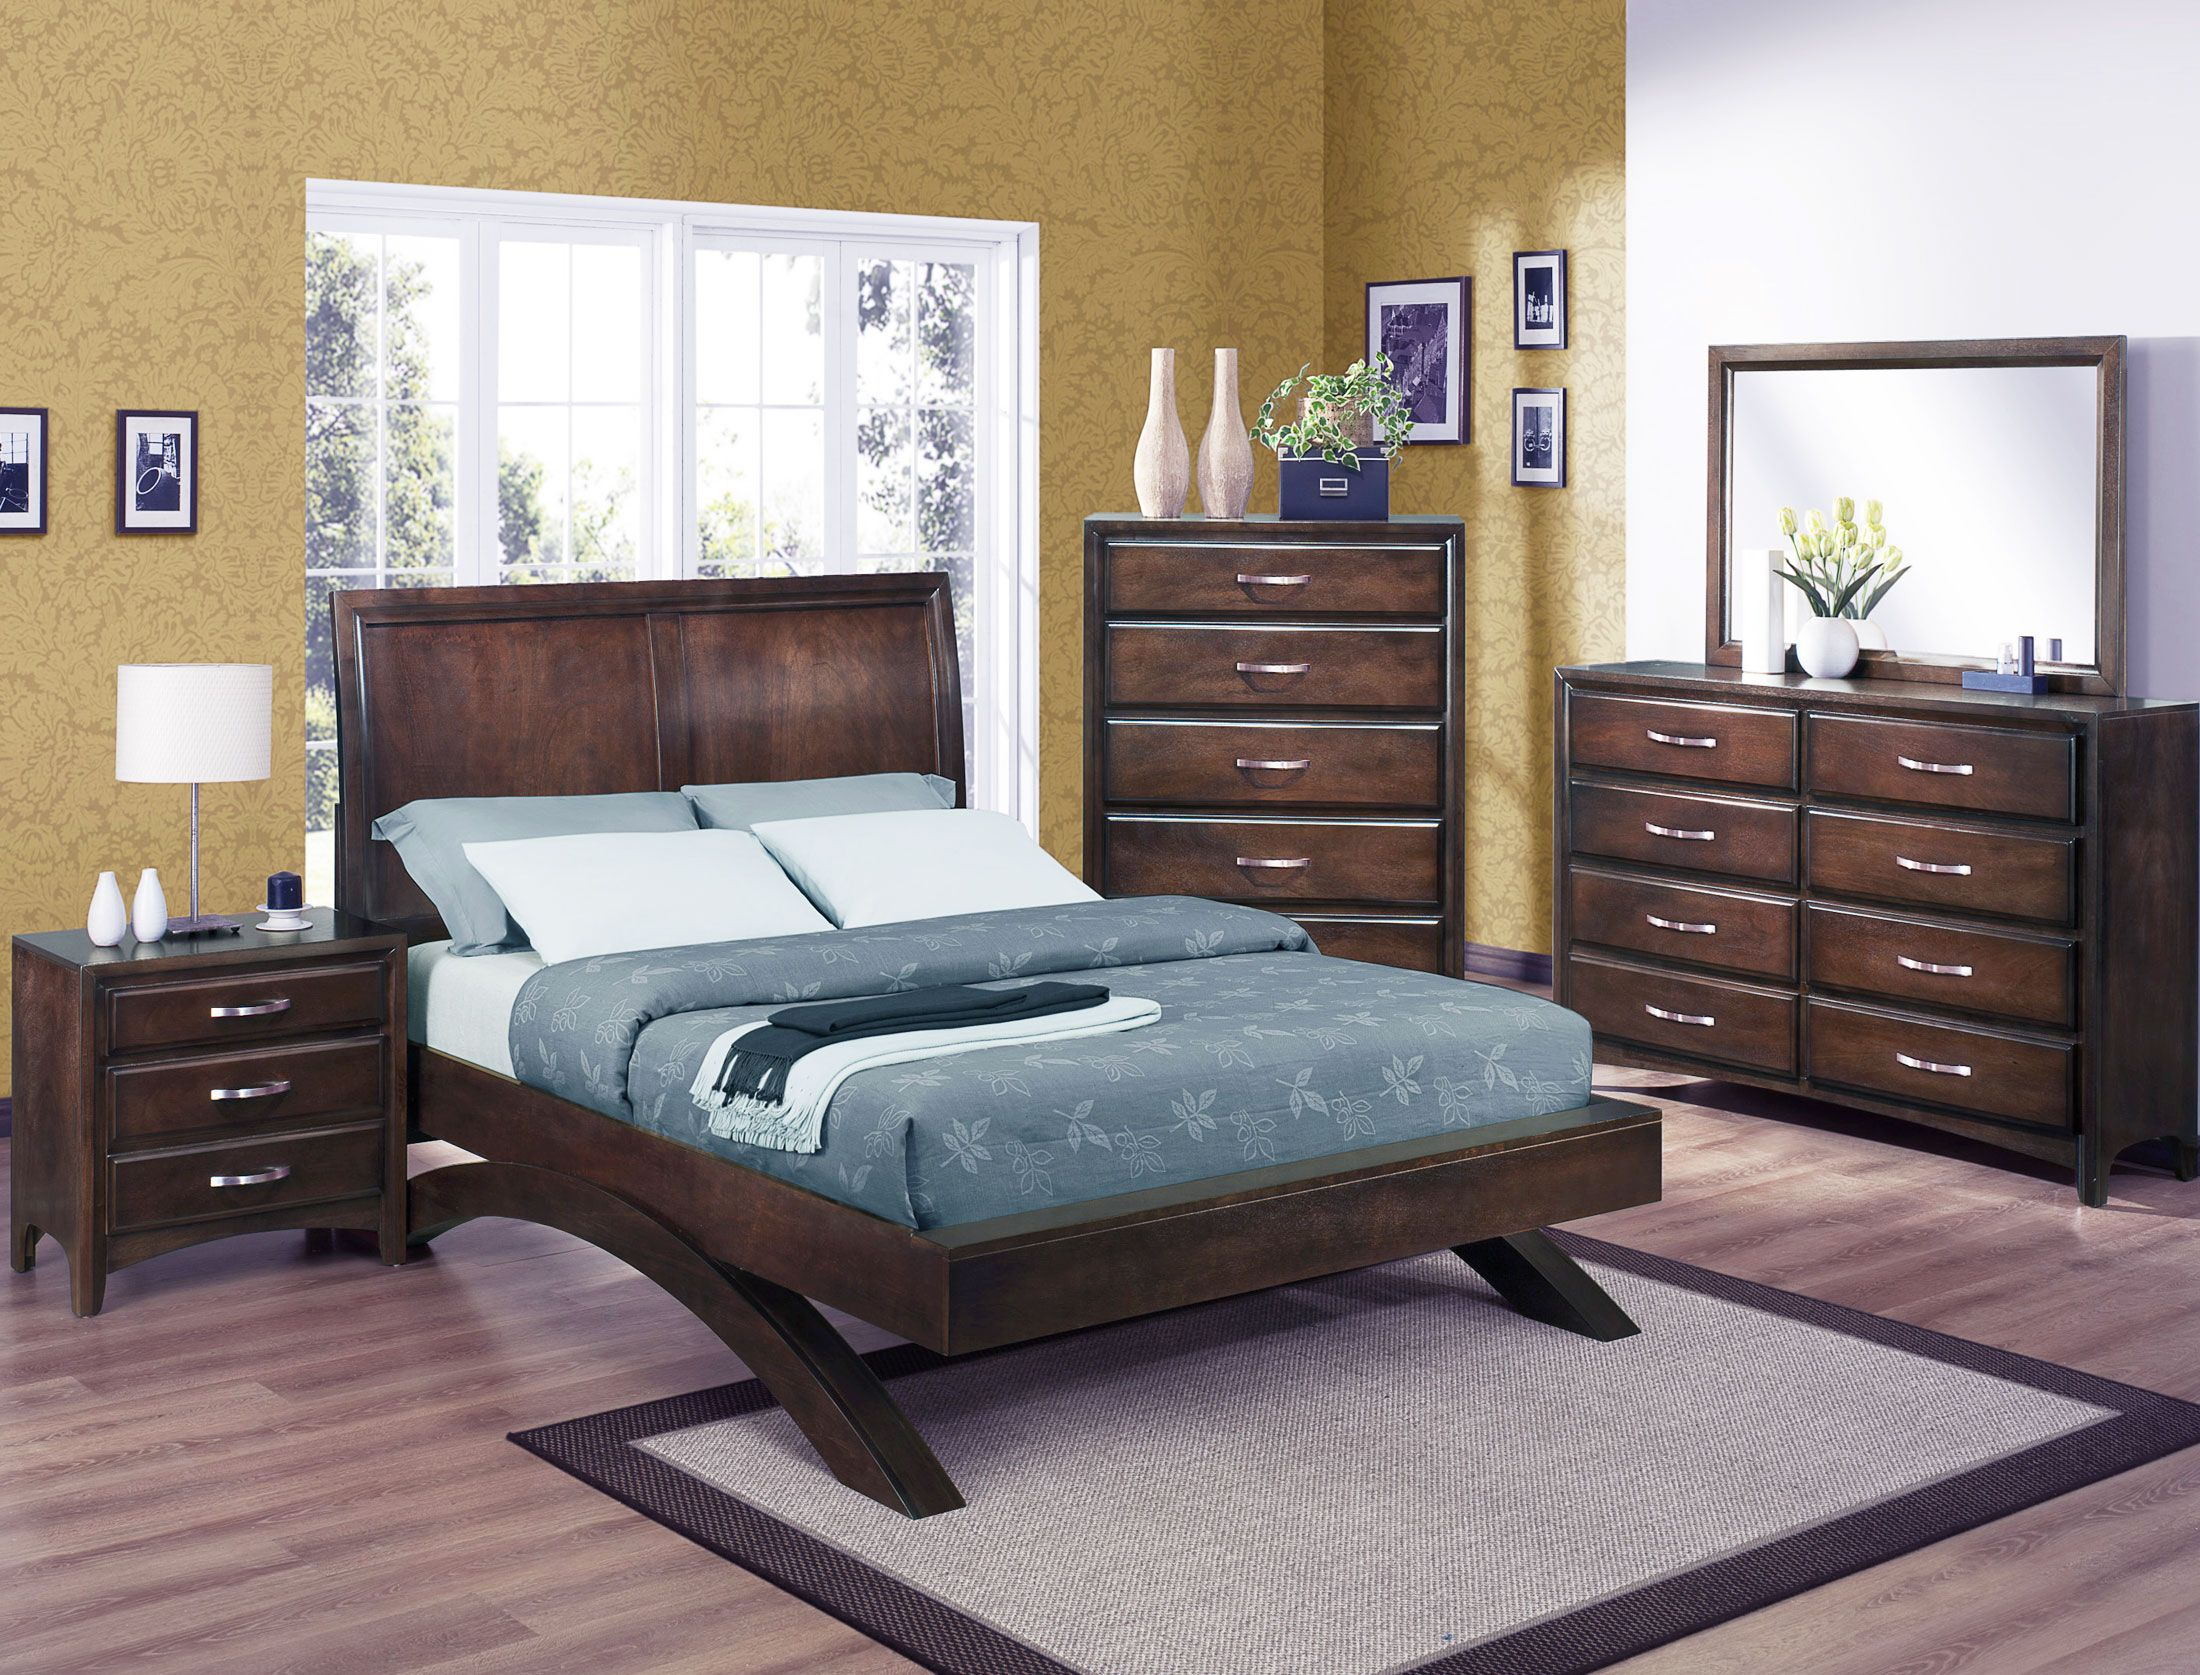 combines that collection brooklyn furniture transitional pin nebraska mart sets master unique has the style bedroom